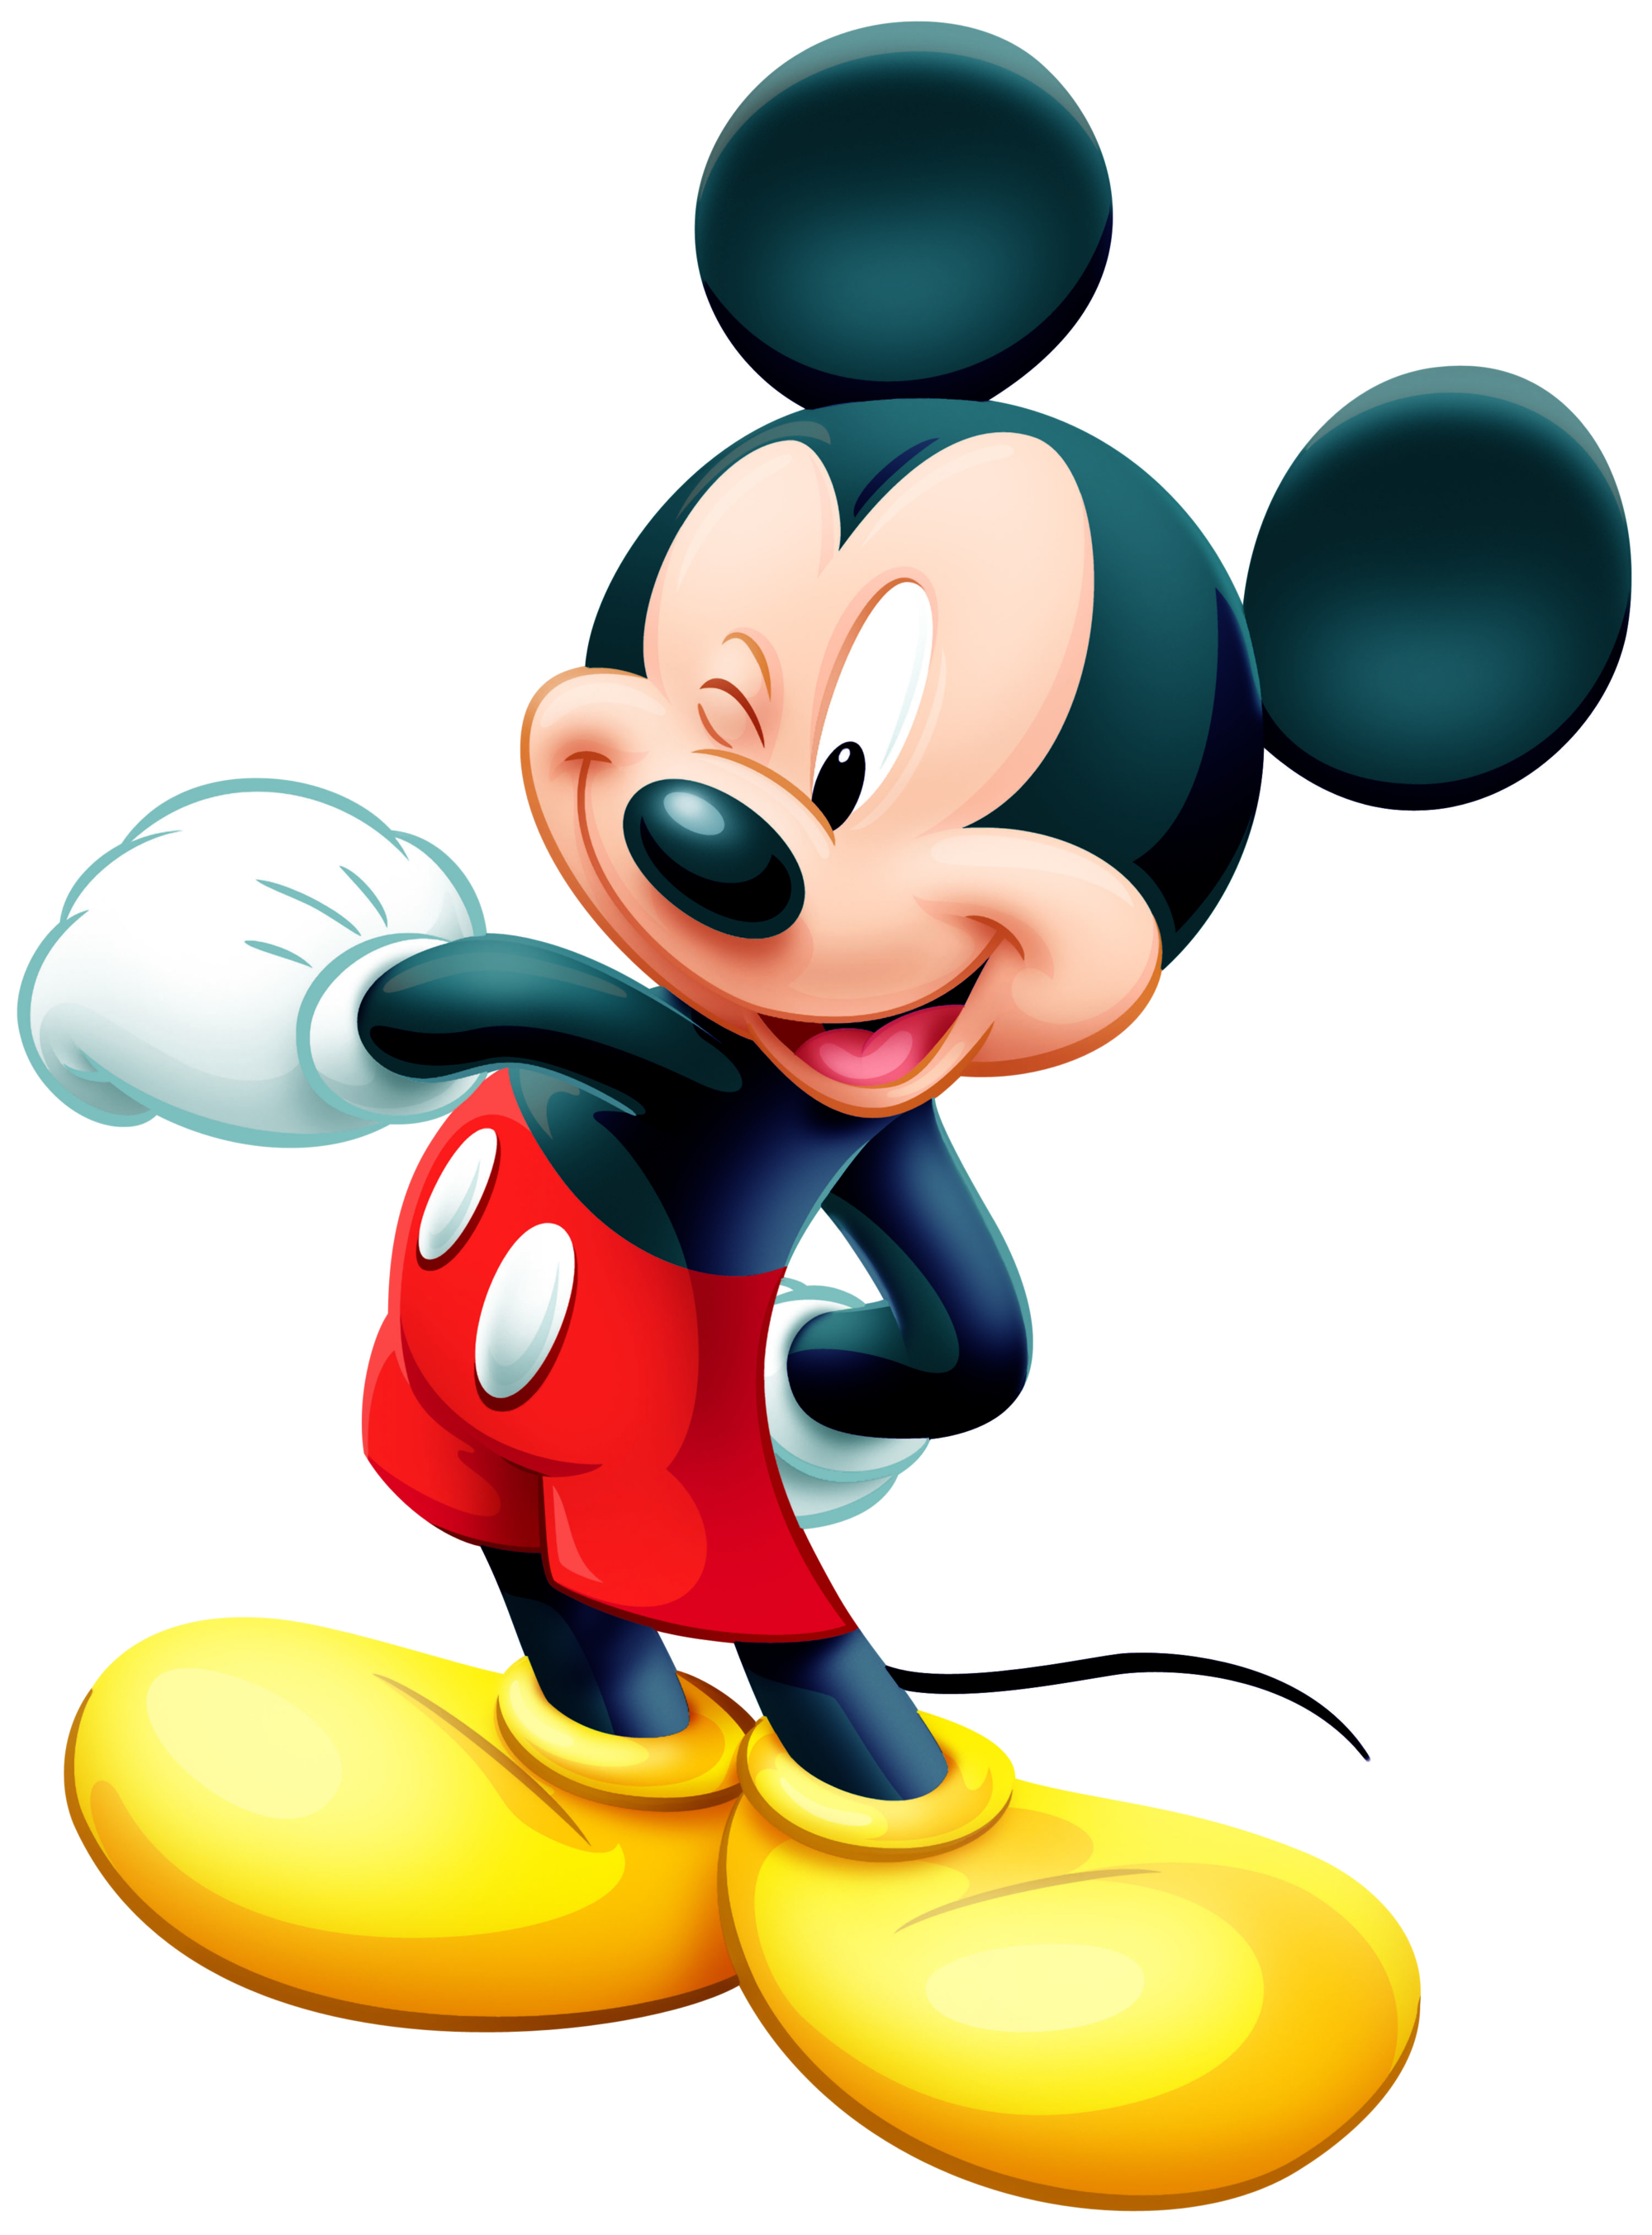 Mickey mouse fantasia png. Minnie donald duck the